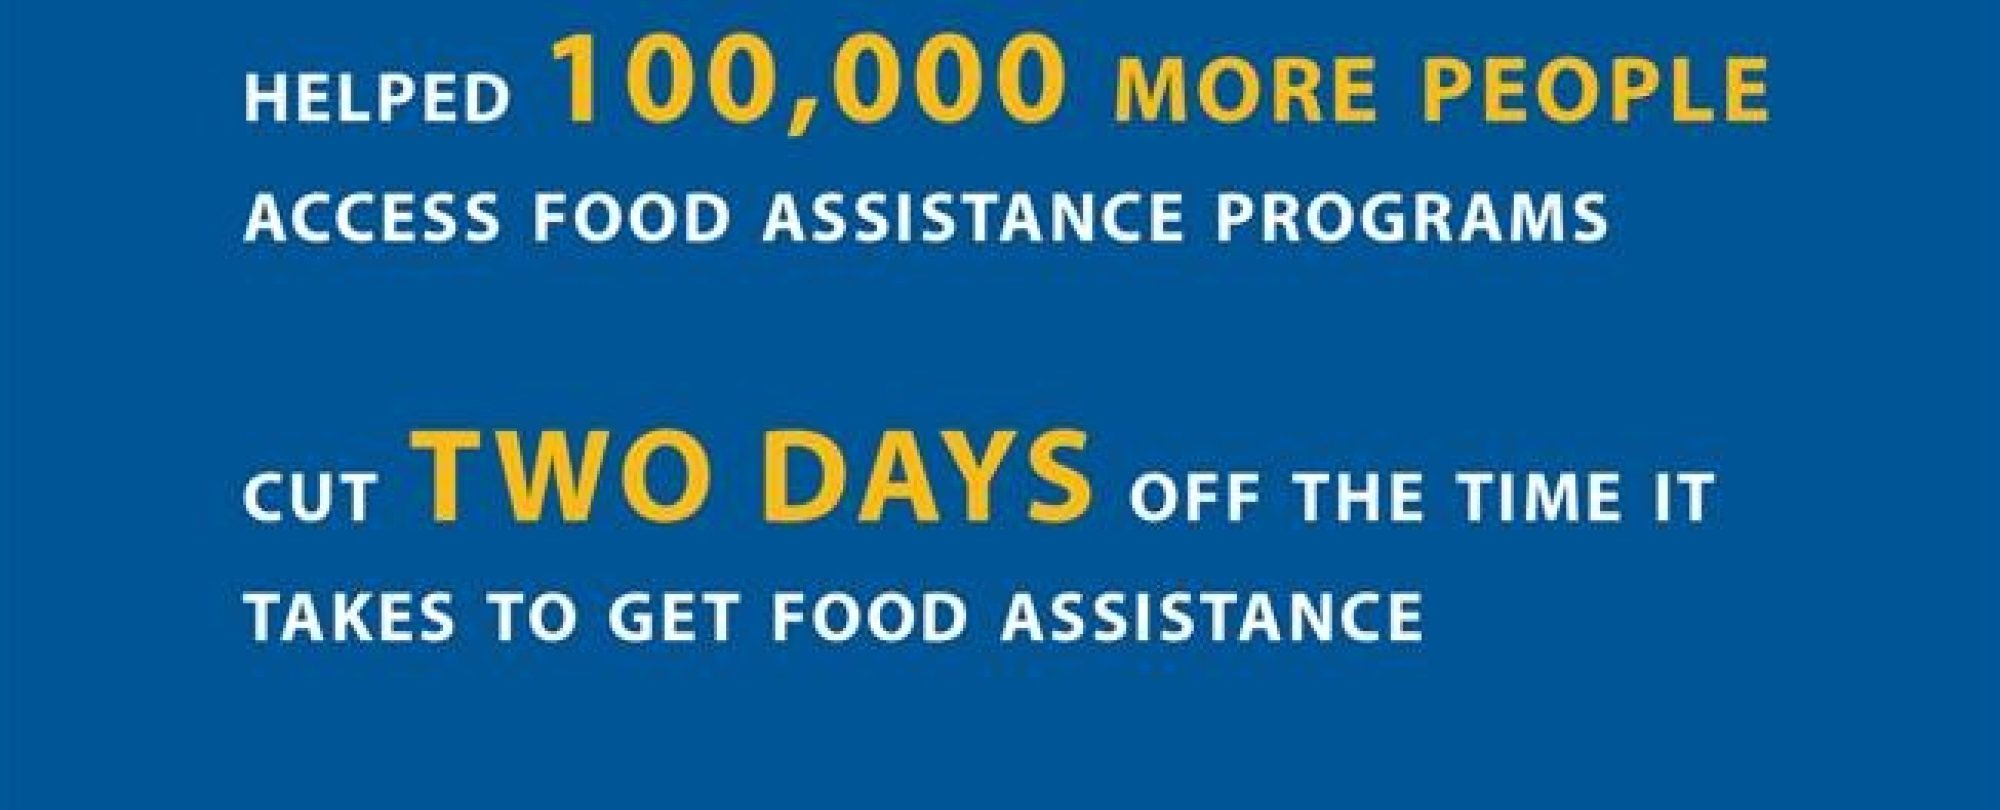 Helped 100,000 more people access food assistance programs. Cut two days off the time it takes to get food assistance.